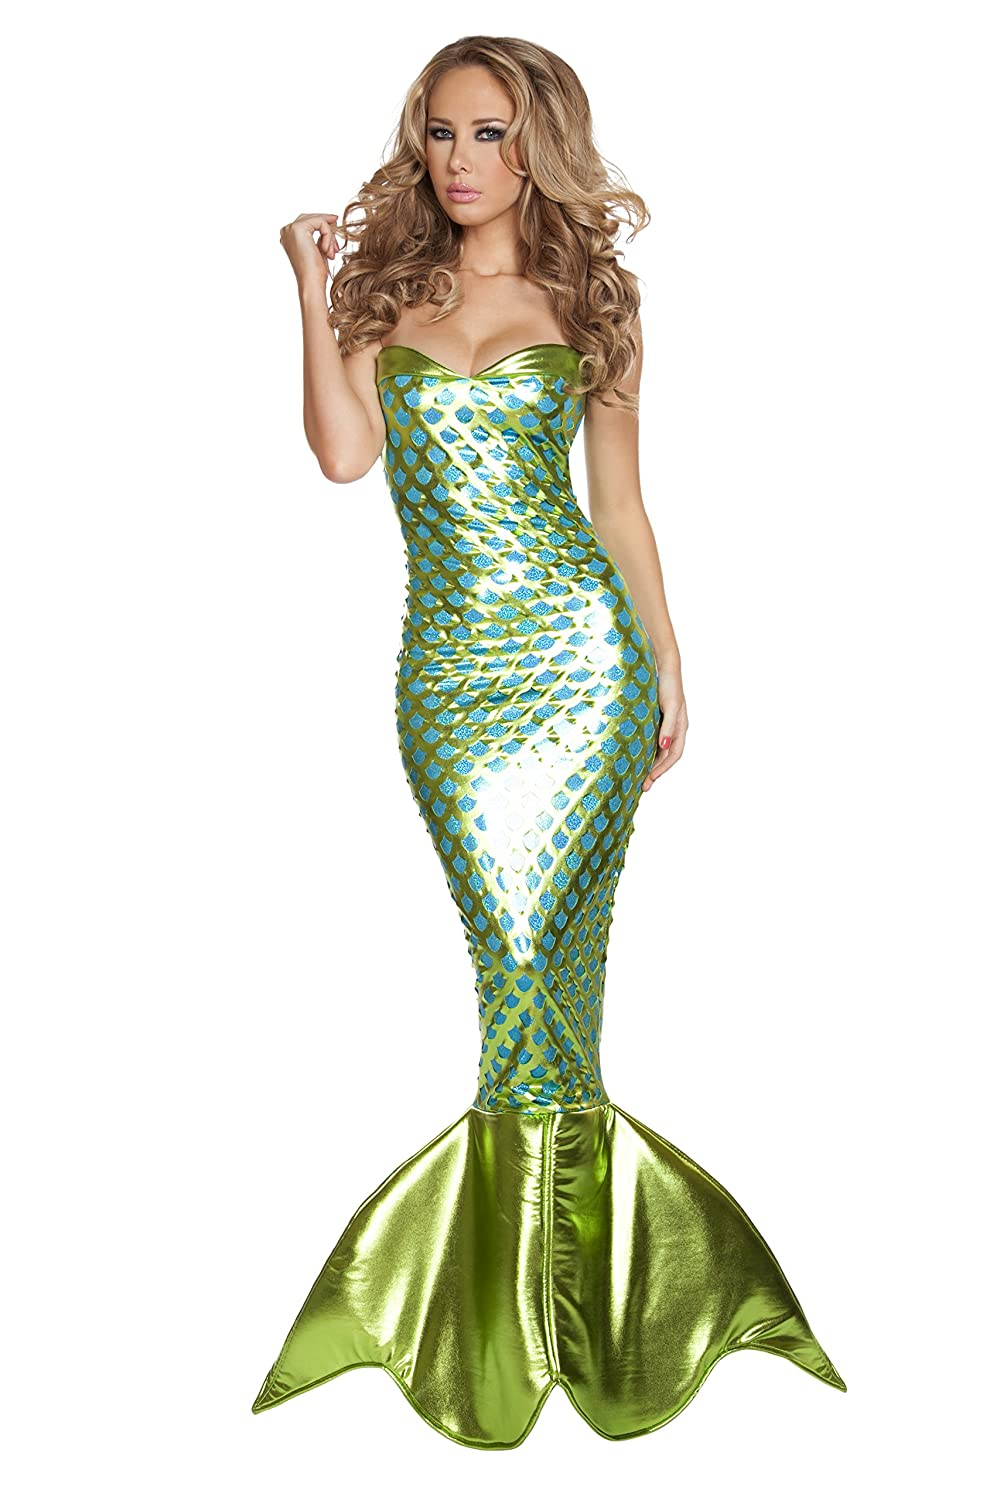 Roma Costume Women's 1 Piece Sexy Sea Creature